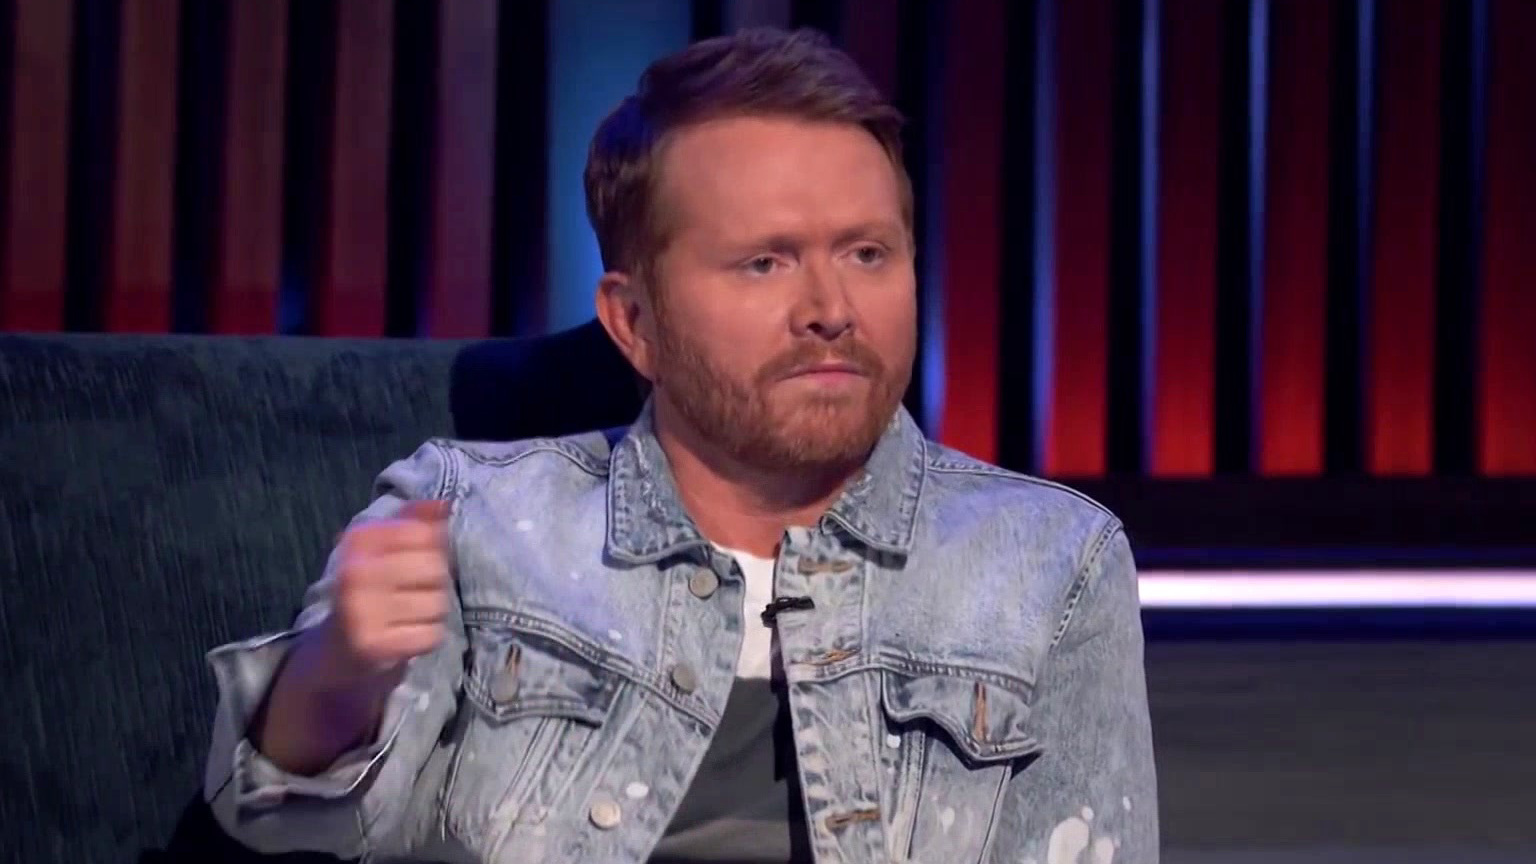 Songland: David Wade Performs Personal Produced By Shane Mcanally